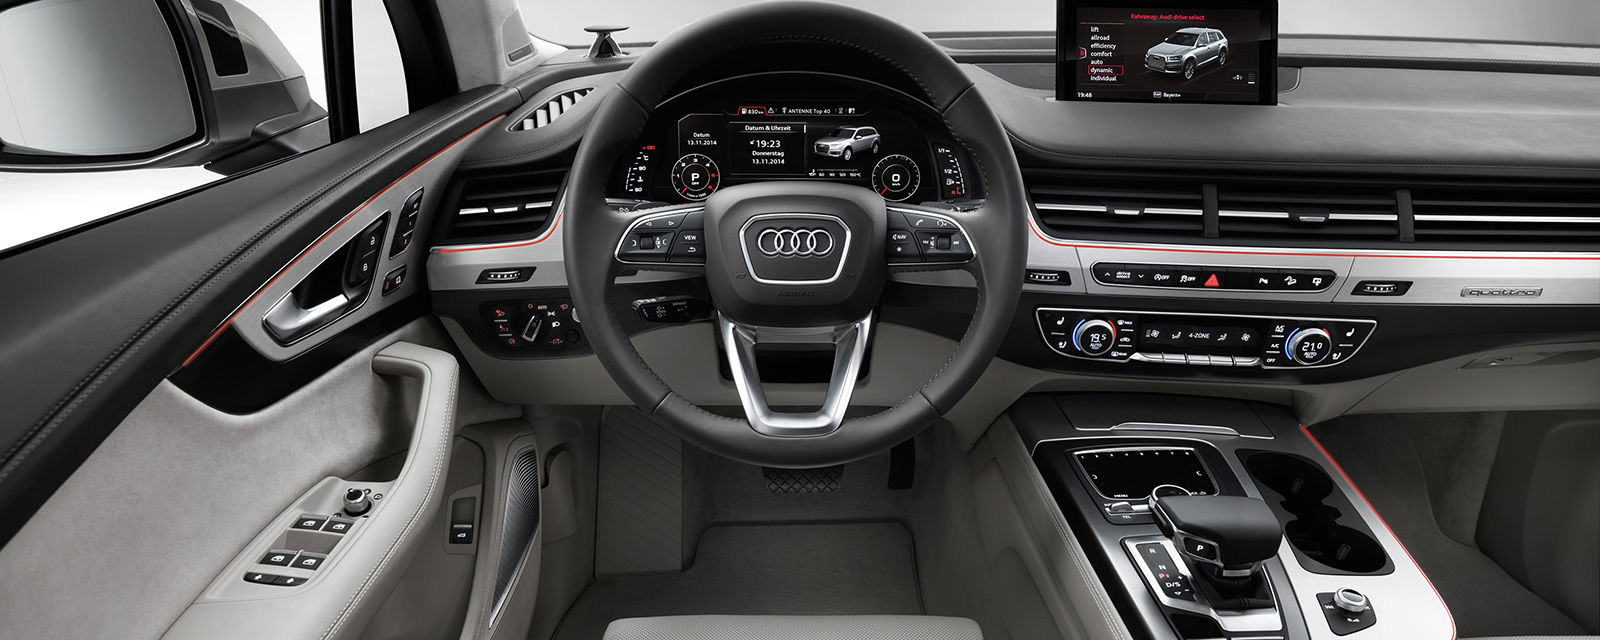 Car with best interior uk - Car interior design ...